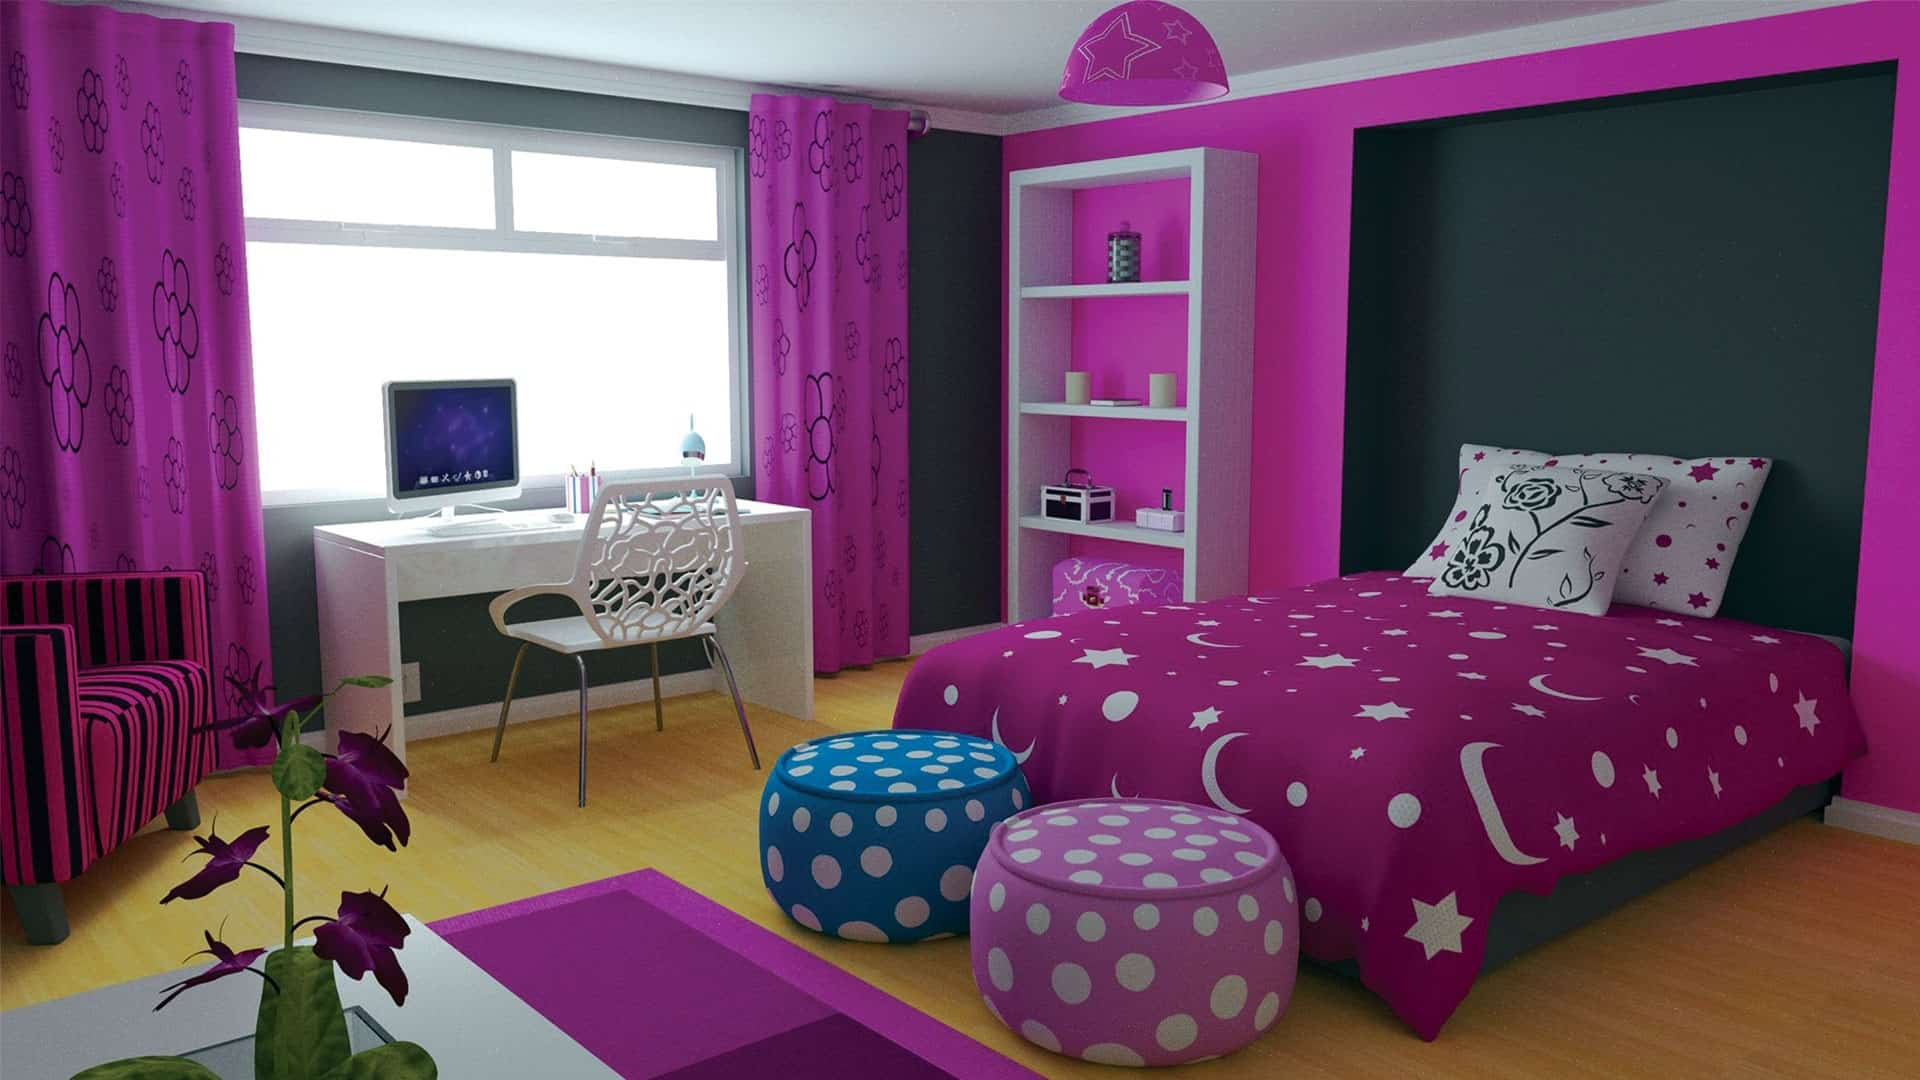 Home decor trends 2017 purple teen room - Bedroom apartment decorating ideas ...